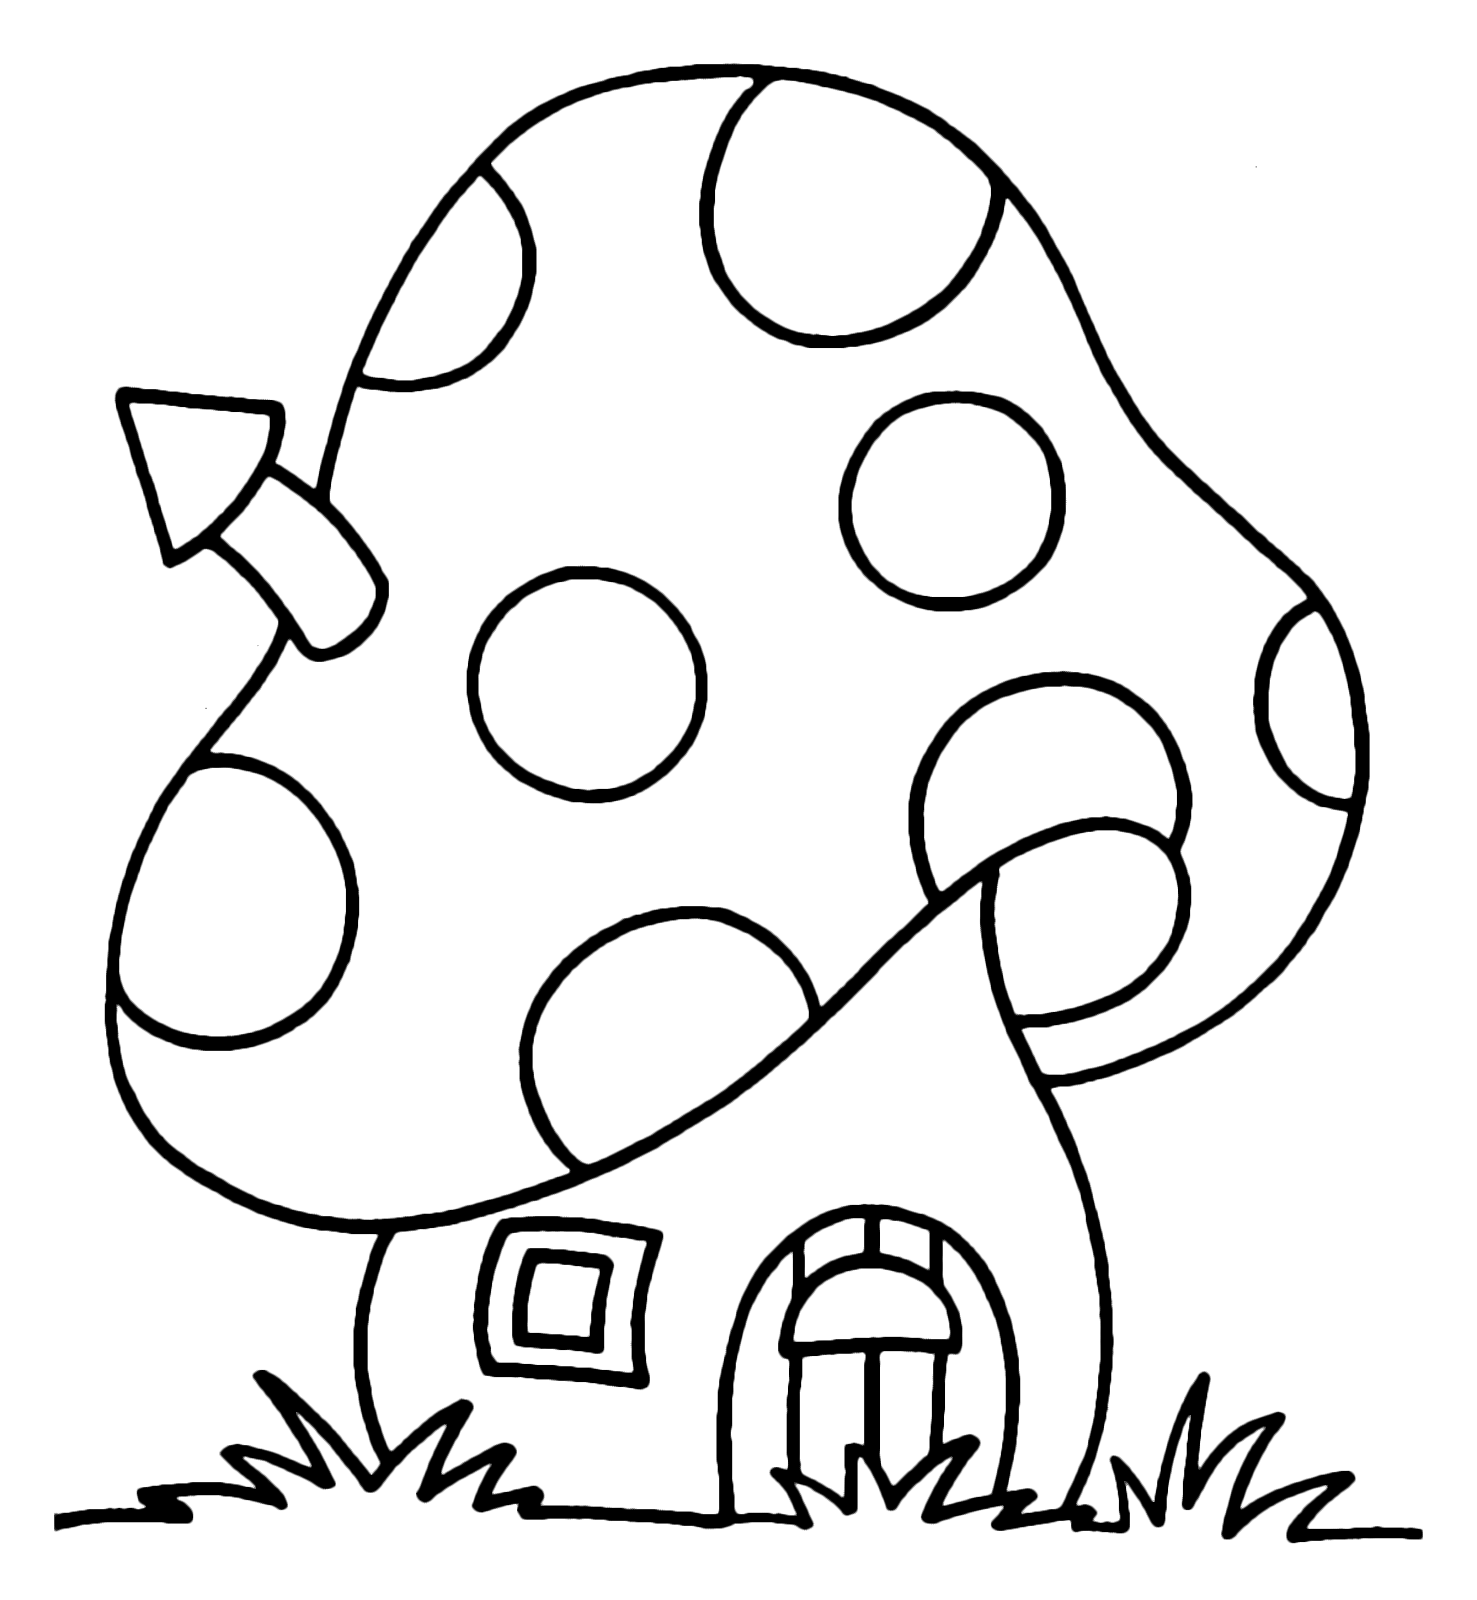 Simple Butterfly Coloring Pages For Preschoolers Butterfly Coloring Page Preschool Coloring Pages Printable Flower Coloring Pages